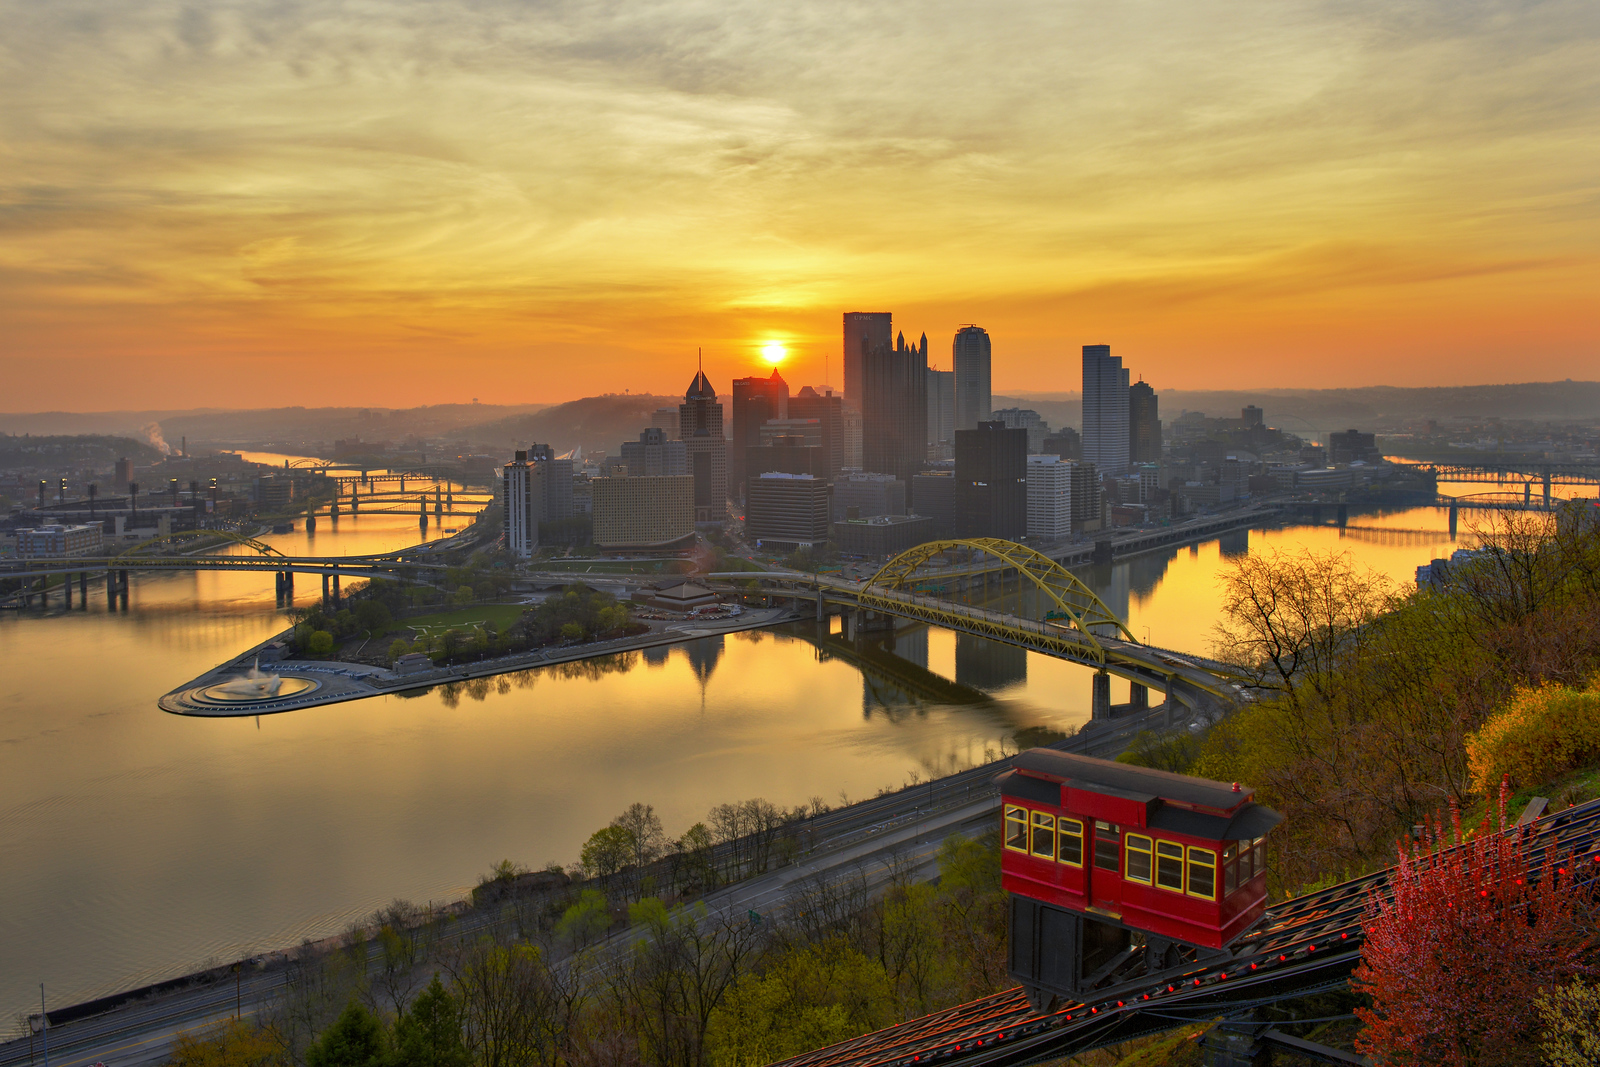 """<center><br><font size=""""4"""" color=""""white""""><b>""""DAWN OF A NEW DAY"""" - Pittsburgh, Mt. Washington</b><br> </font> <br><font size=""""3"""" color=""""white""""> <u>Recommended Print sizes*</u>:<br>  4x6  